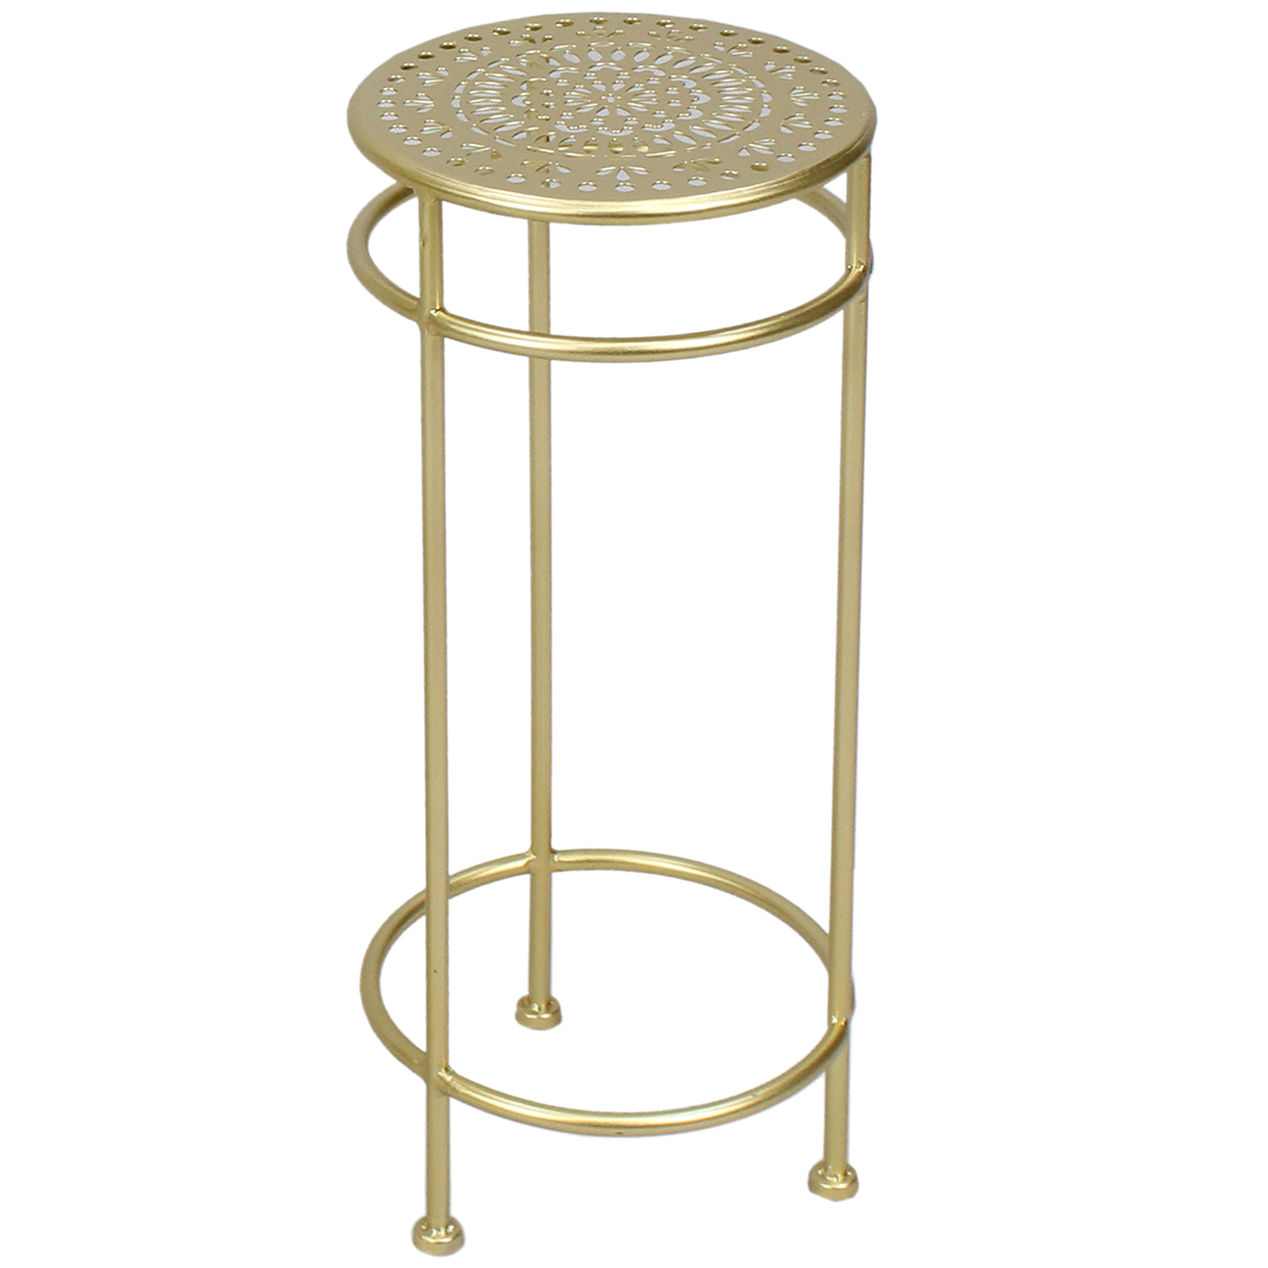 zara pltstnd gold home accent table zoom wire bedside west elm tripod side wine rack bar butler coffee oak threshold trim asian lamps mirrored three drawer mango wood steel legs